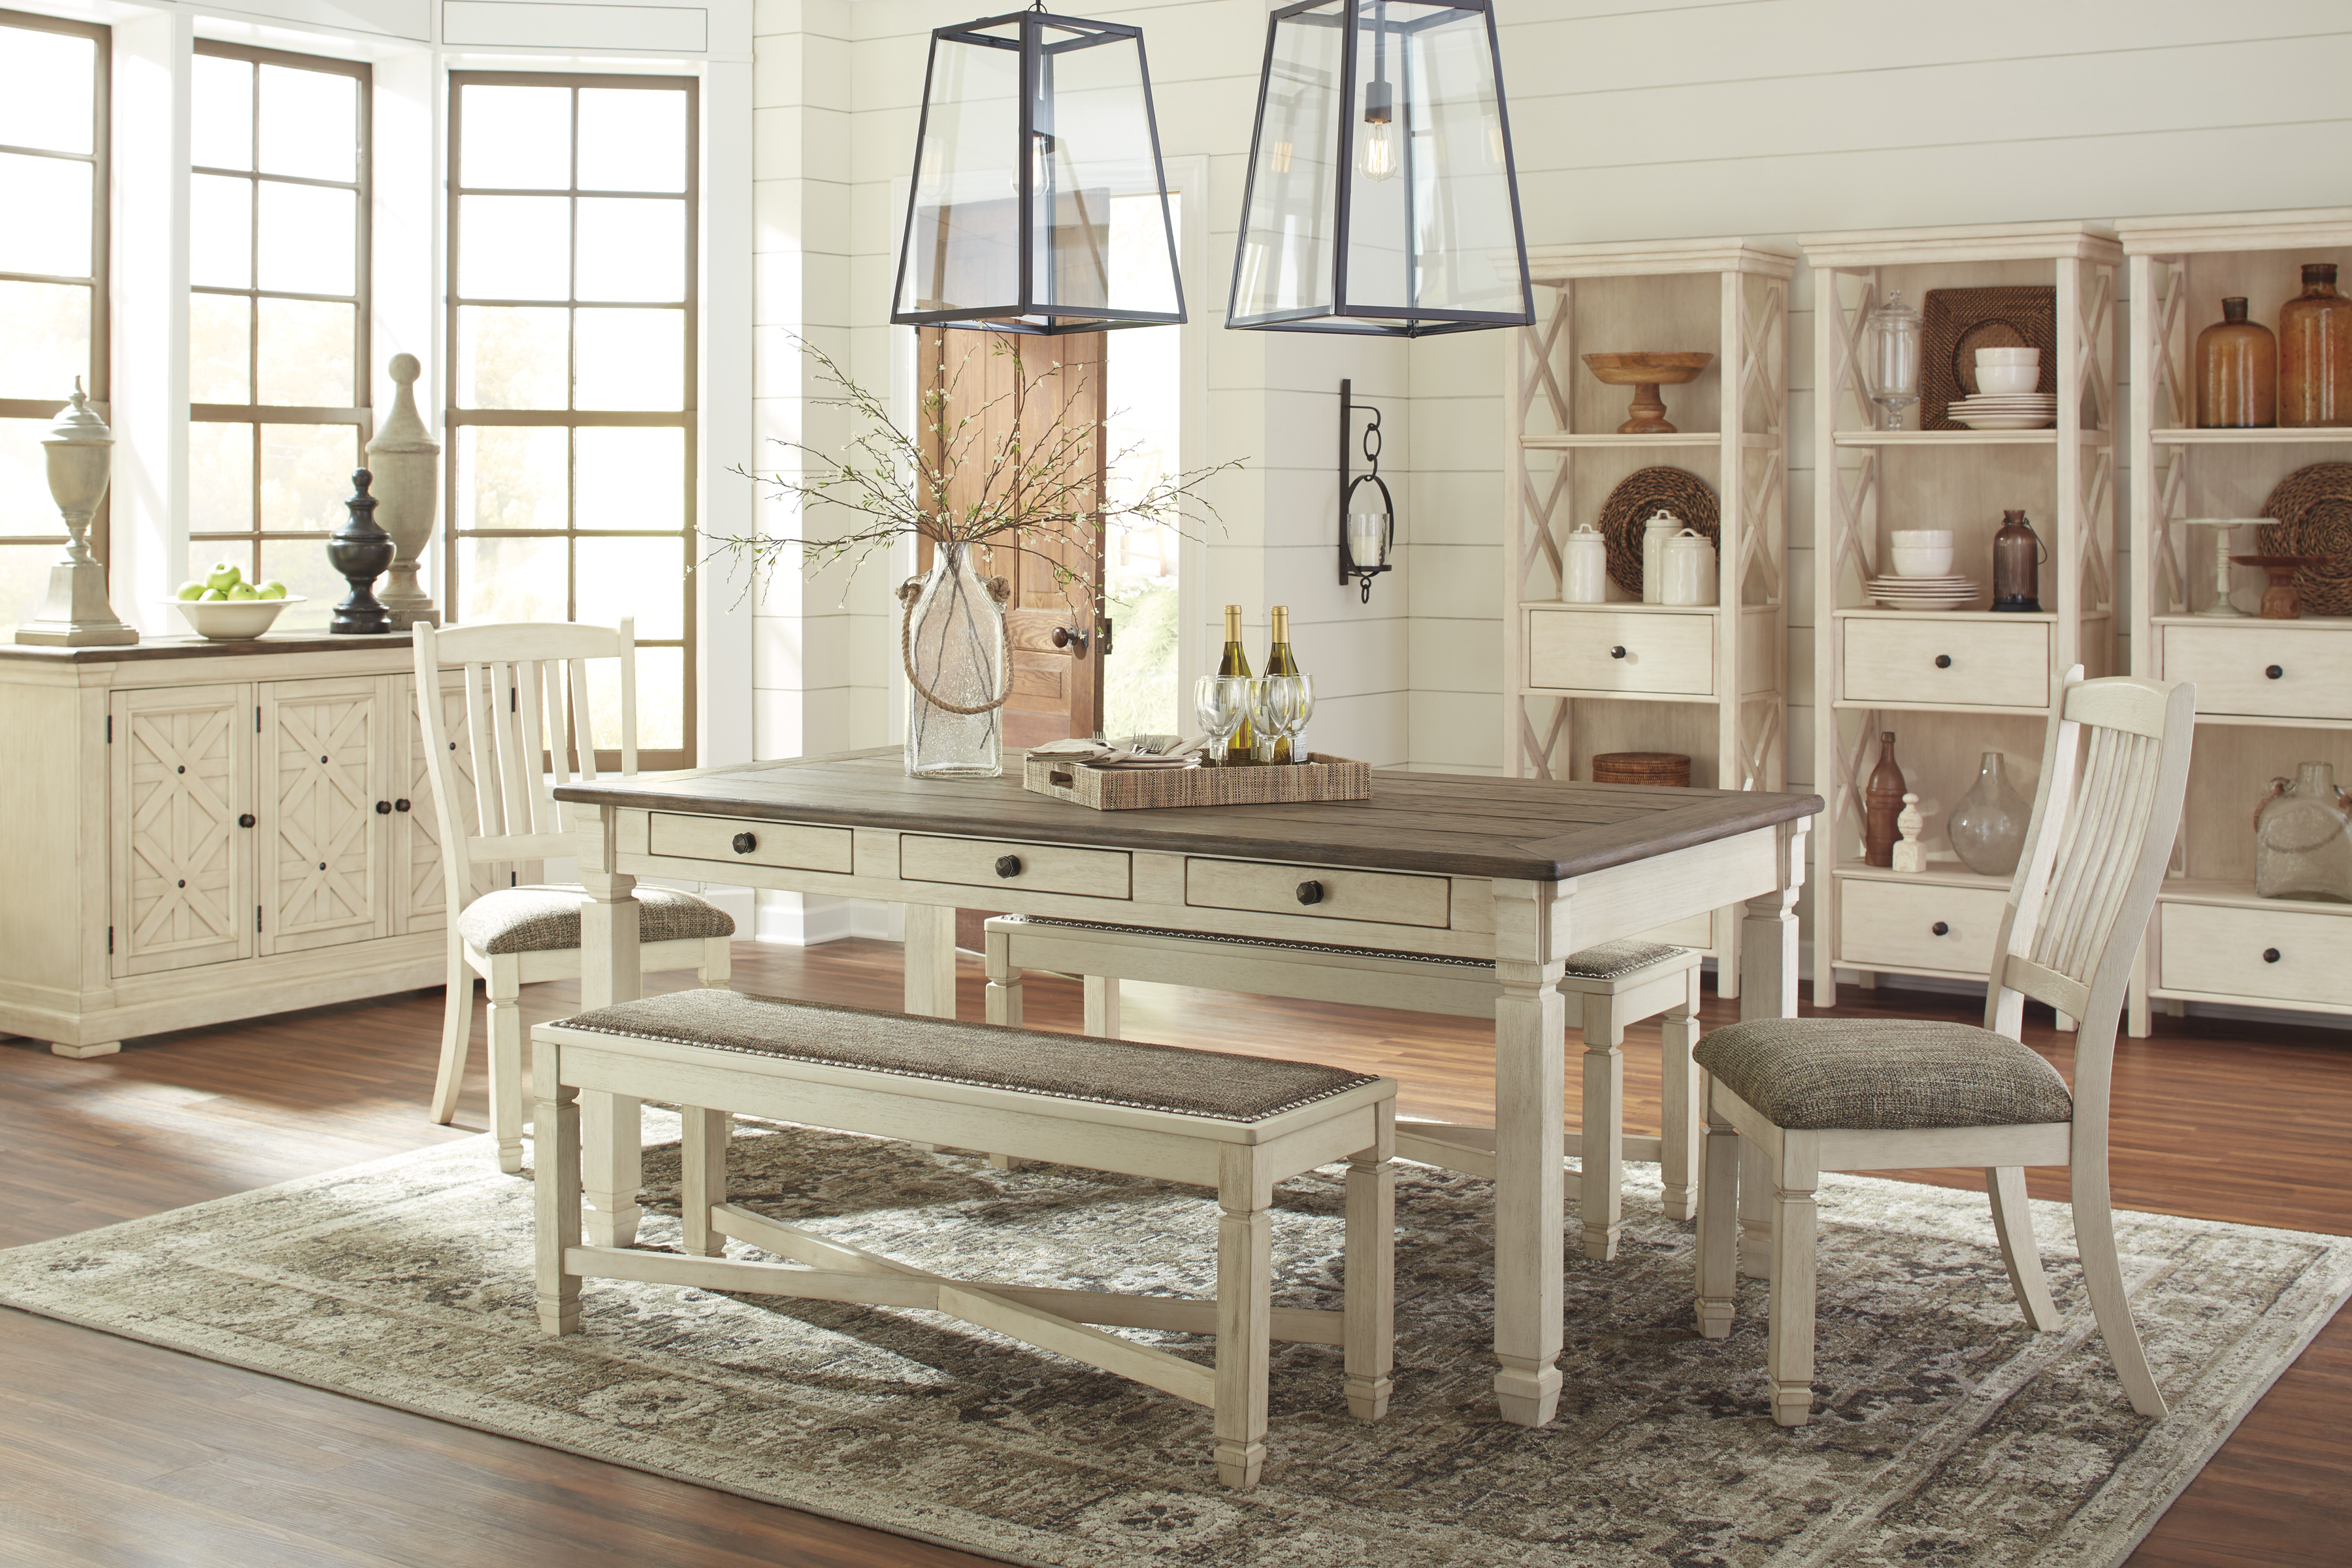 Lovely Currieu0027s Furniture | Furniture Stores At 2668 M 37 S.   Traverse City MI